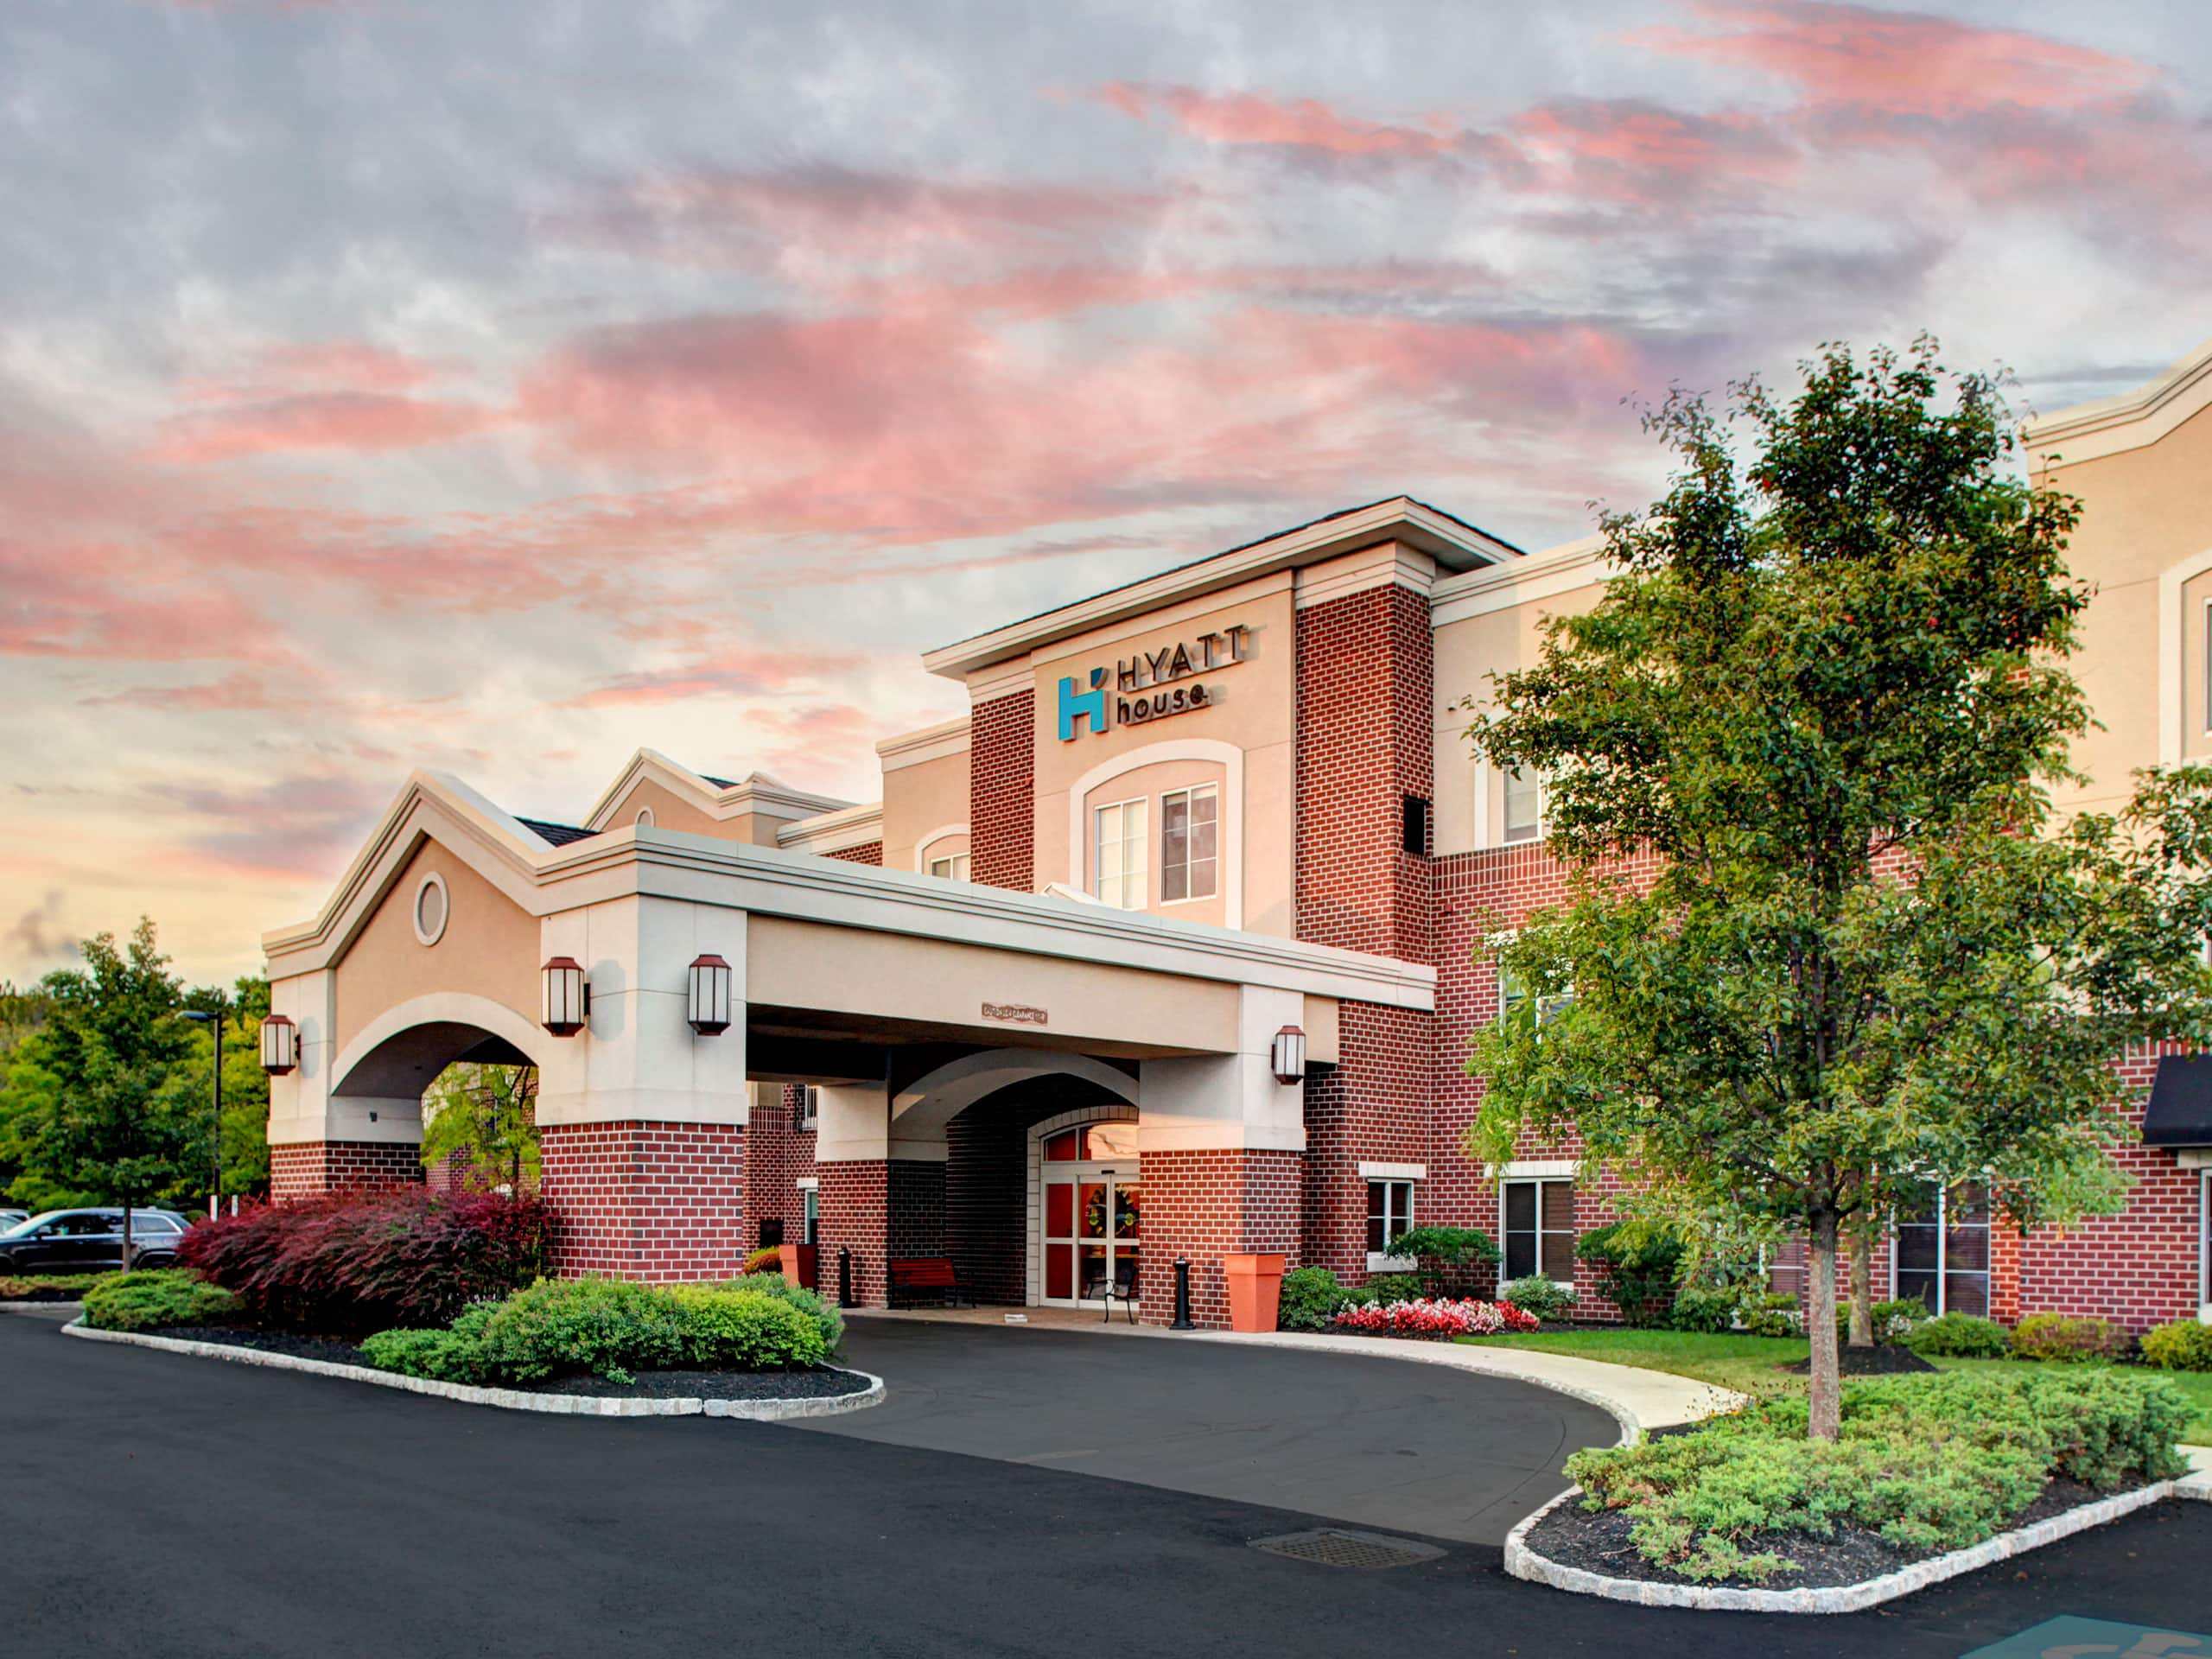 south inn and hotels hoteldetail us bentley near holidayinnexpress tulsa holiday suites tulbi hotel bixby college by en ihg express